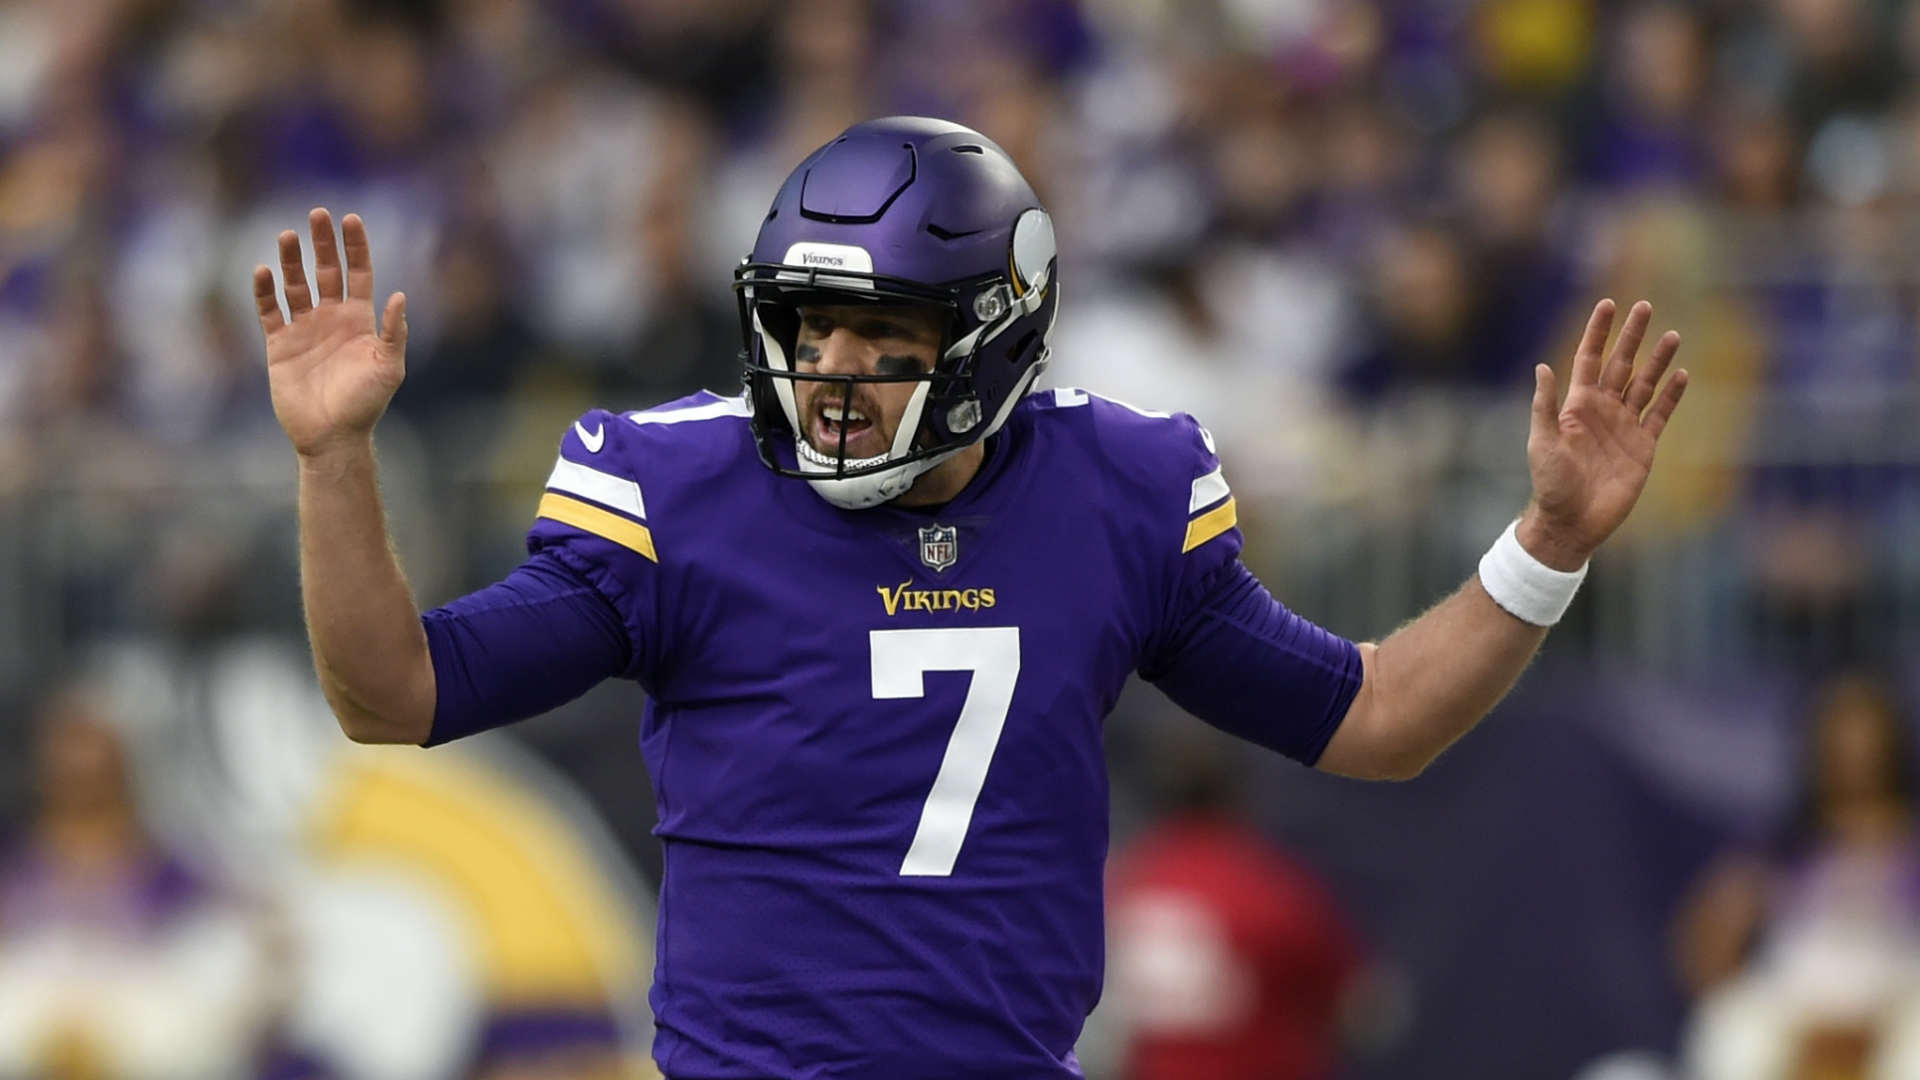 NFL Week 12 Power Rankings: Playoff picture becoming clearer